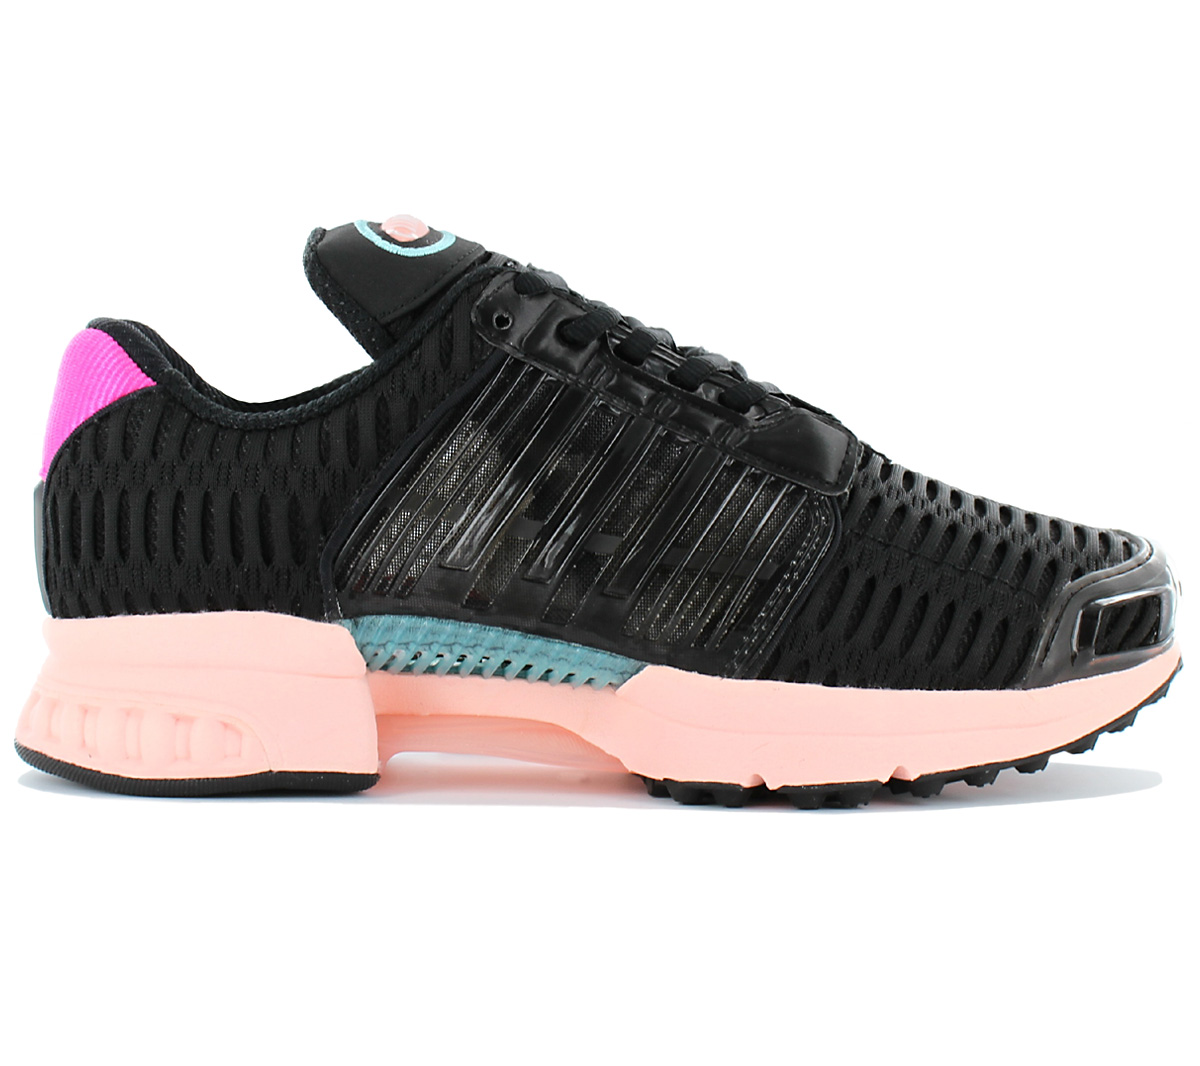 18cb8db0cb818 Details about Adidas Climacool 1 W Women's Shoes Black Running Shoes  Running Clima Cool BB5303